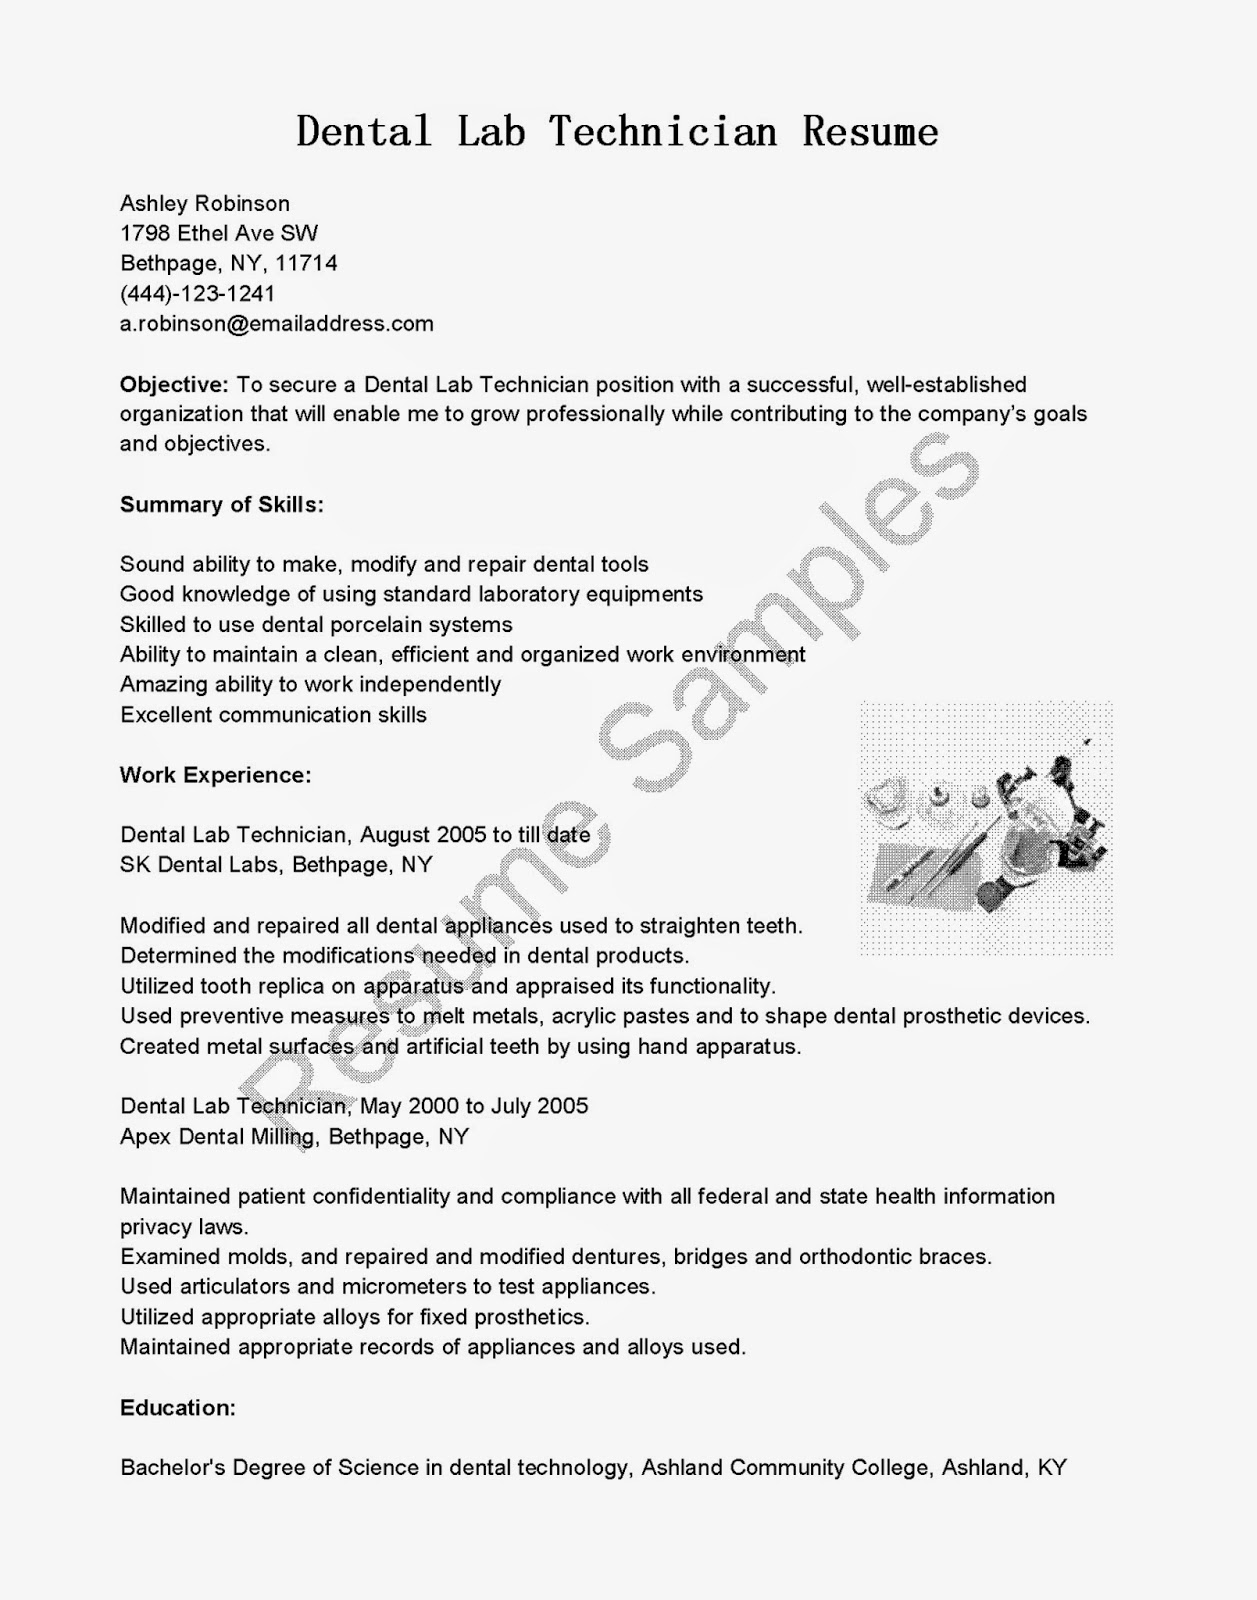 resume samples for hindi teachers resume format examples resume samples for hindi teachers 7 teachers resume samples and formats now resume of dental